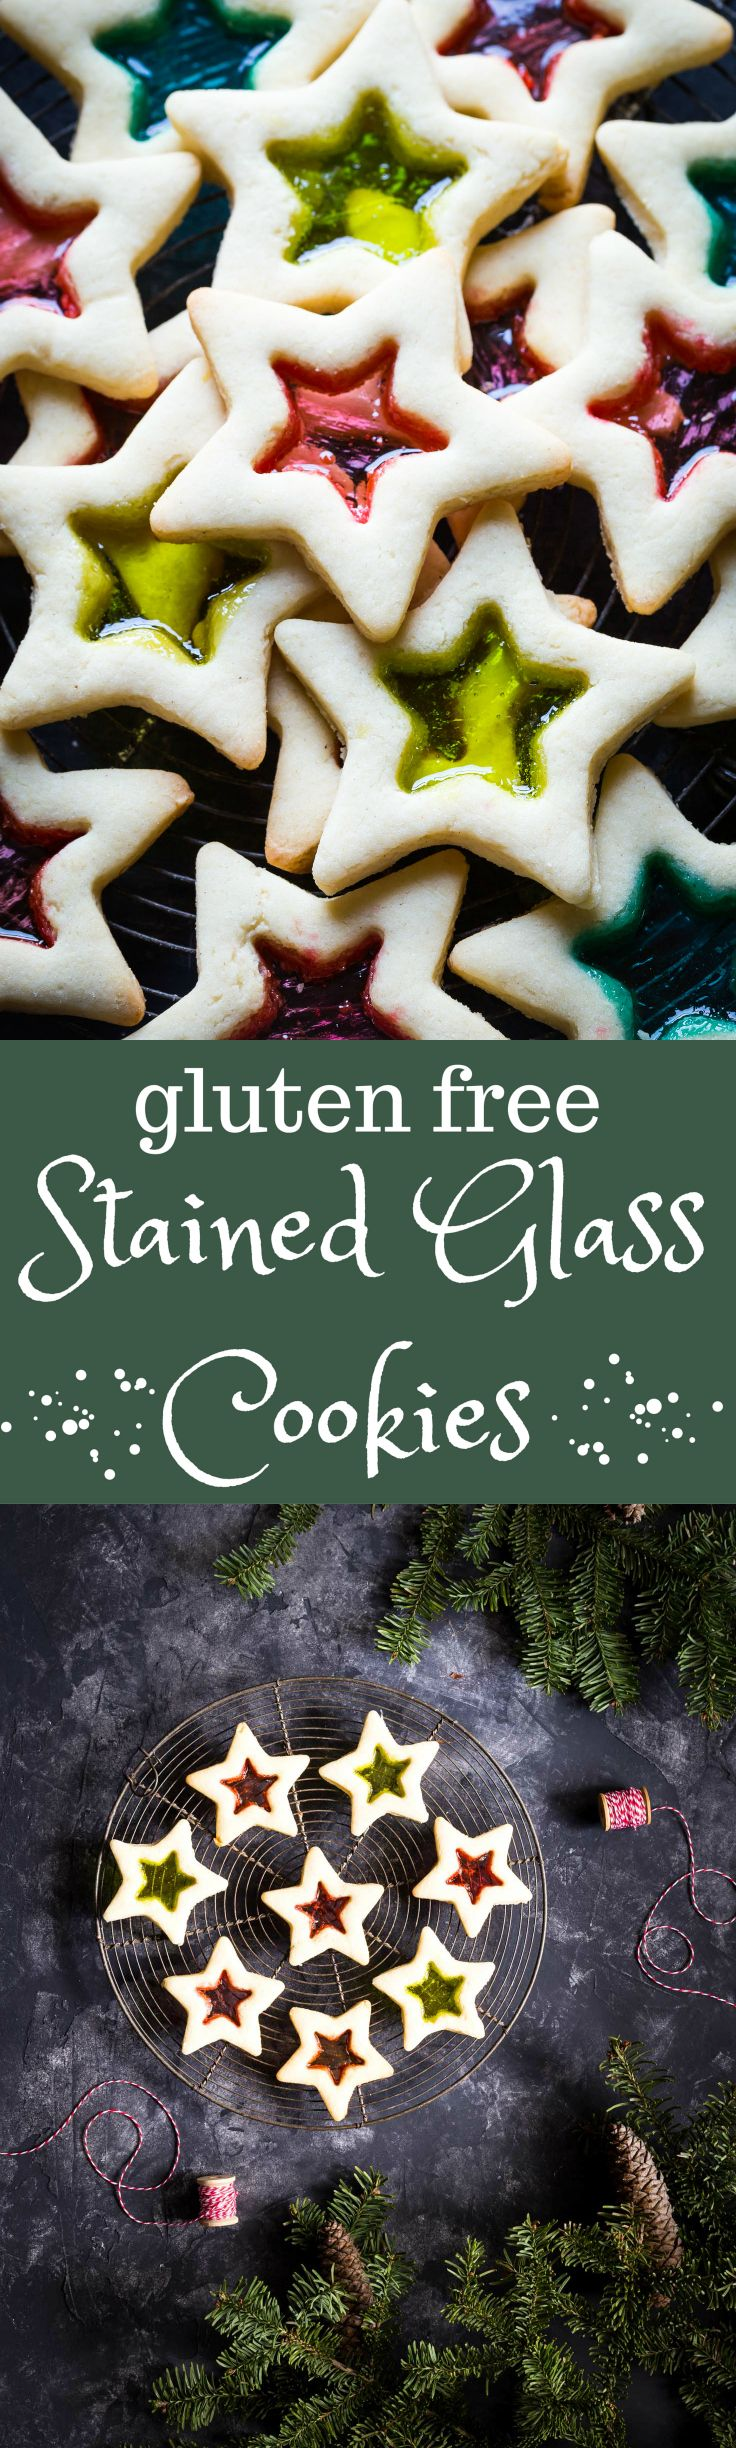 Absolutely gorgeous Gluten Free Christmas Cookies with Stained Glass. You can can make these with your kids, they are SO easy! | dairy free | gluten free | Christmas |